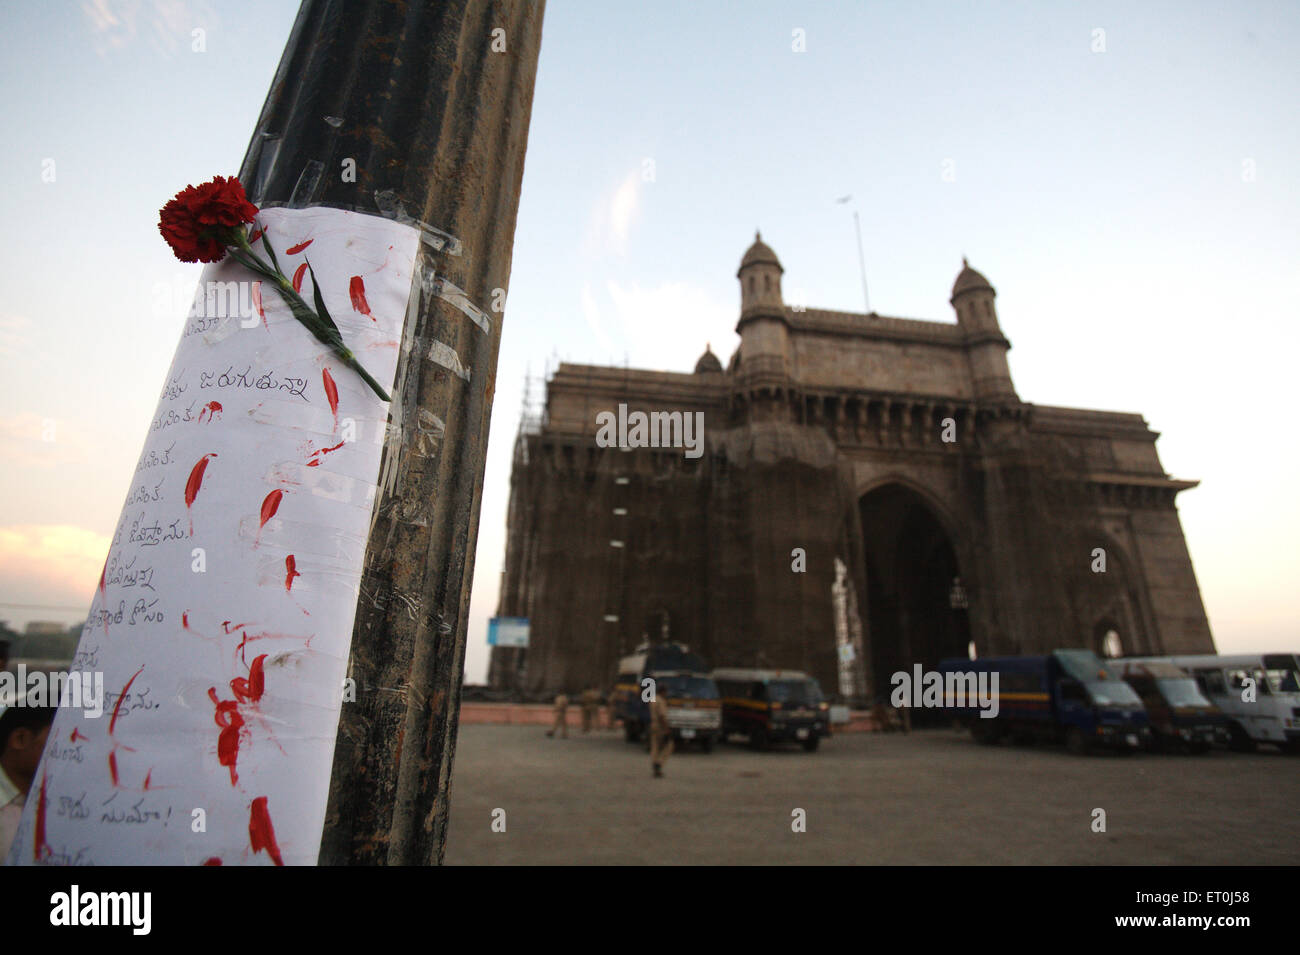 Condolence message written south Indian language red rose pole Gateway ; victims terrorist attack 26th November - Stock Image